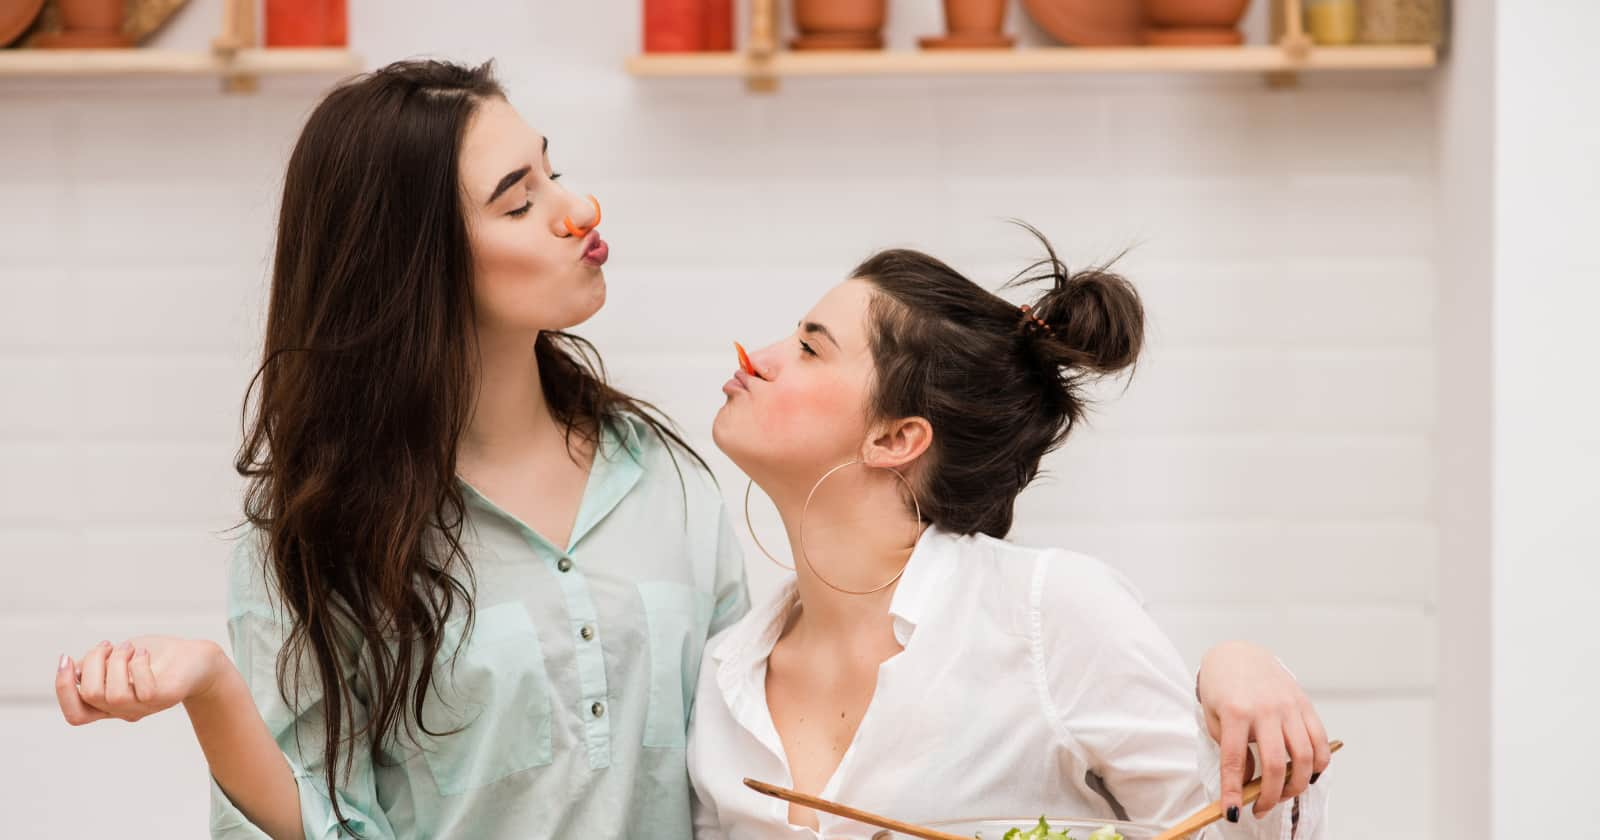 11 Pics of Real Lesbian Couples You Should Not Miss During